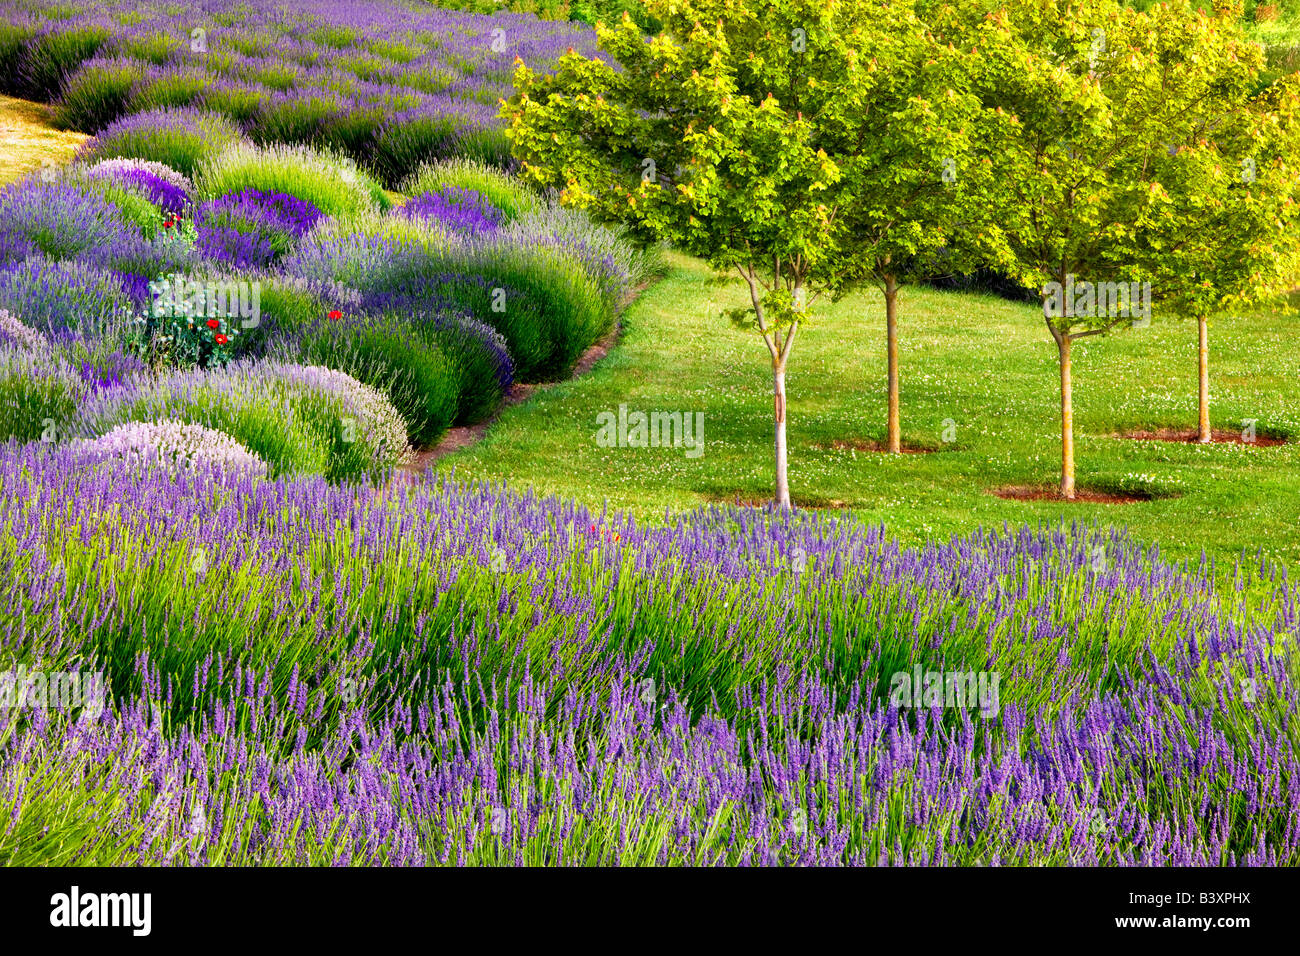 Jardin du Soleil lavendar farm Washington - Stock Image